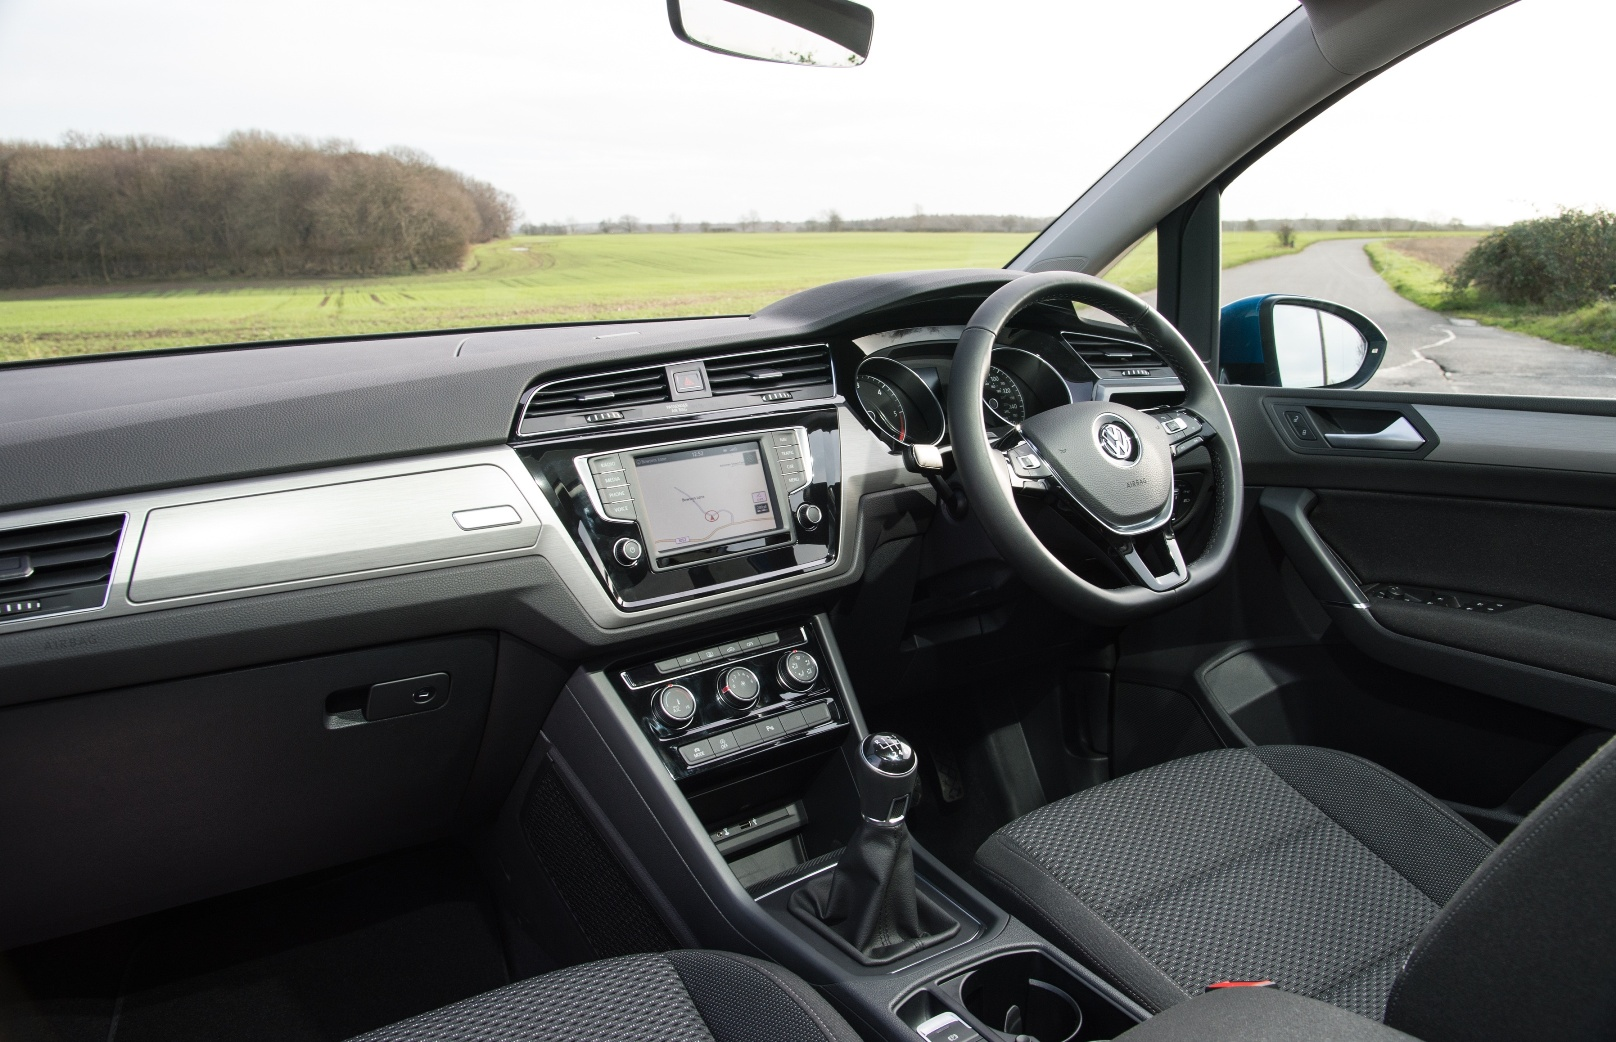 VW Touran front interior